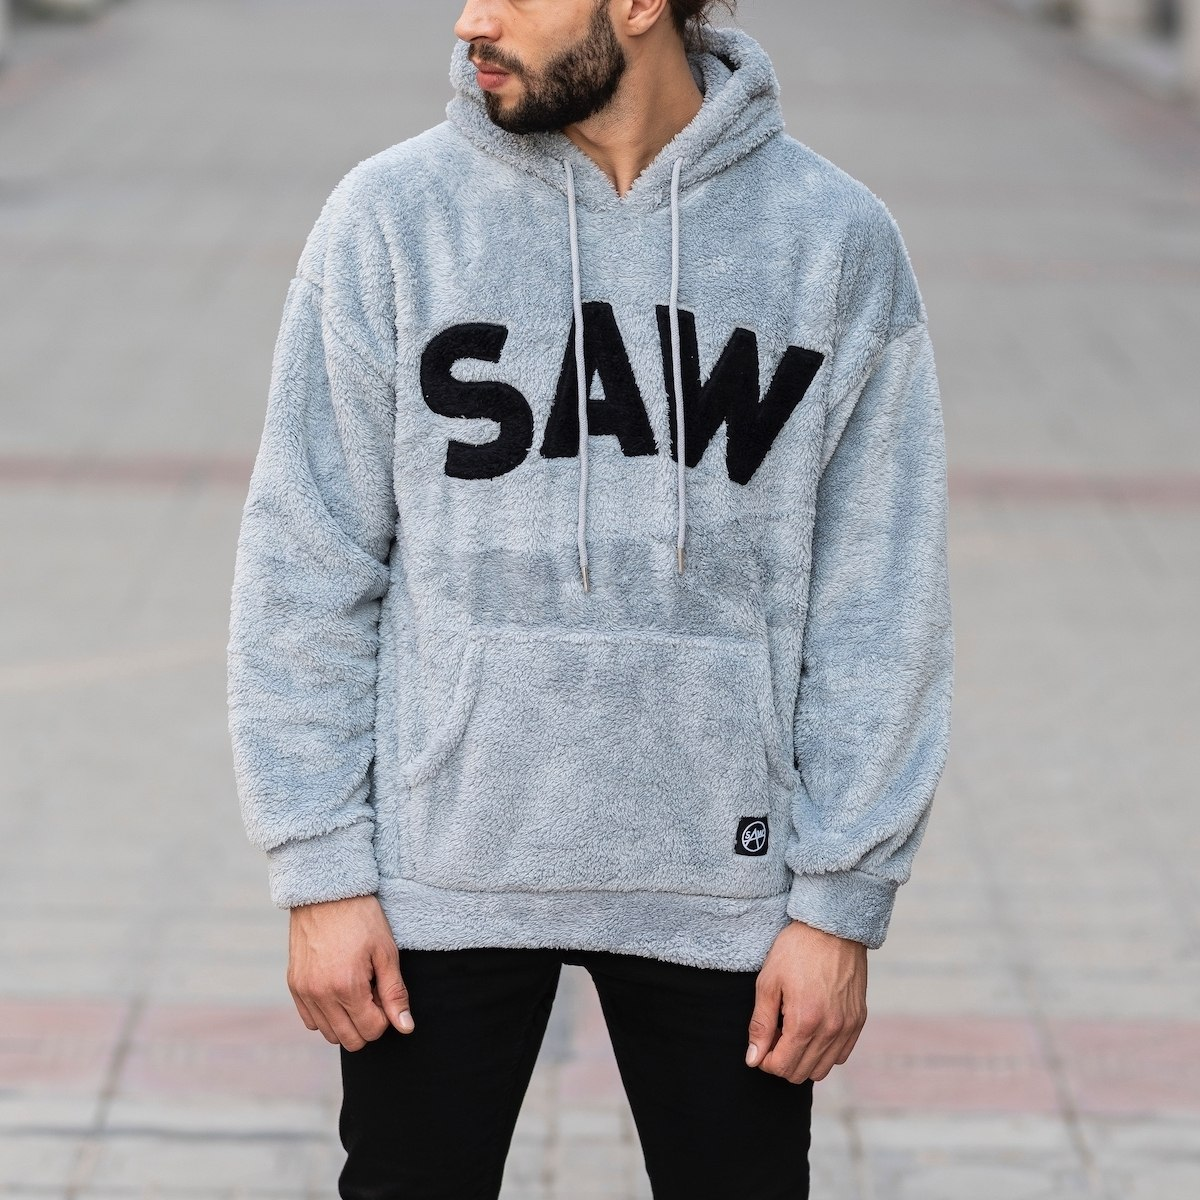 Men's Saw Hooded Sweatshirt With Pockets Gray Mv Premium Brand - 2